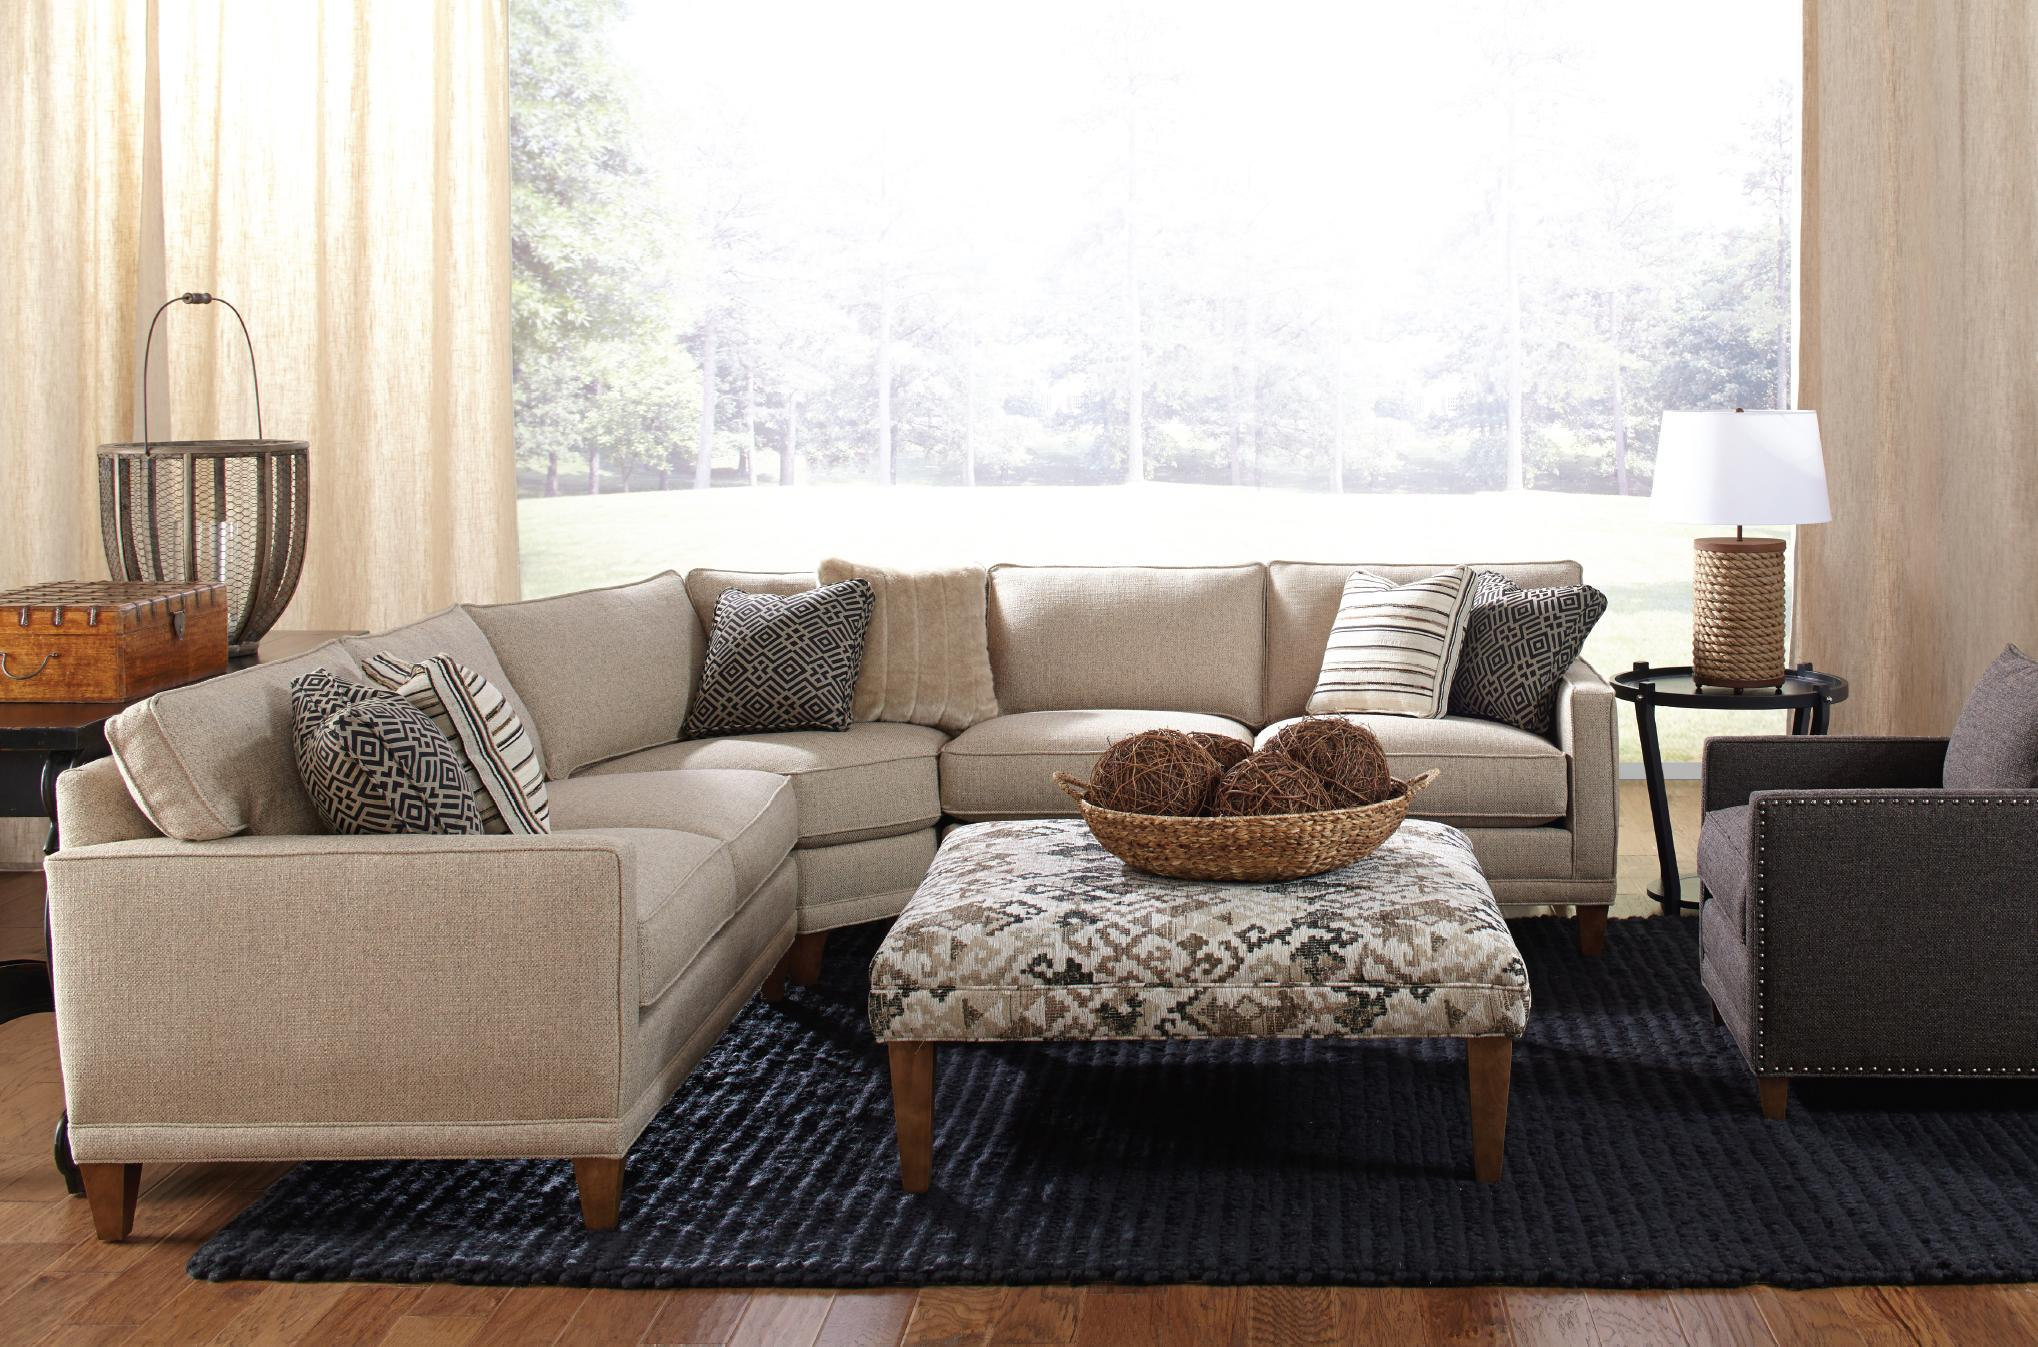 Rowe Townsend Casual Three Piece Sectional Sofa - Sprintz Furniture - Sectional Sofas Nashville Franklin and Greater Tennessee : rowe sectional sofas - Sectionals, Sofas & Couches